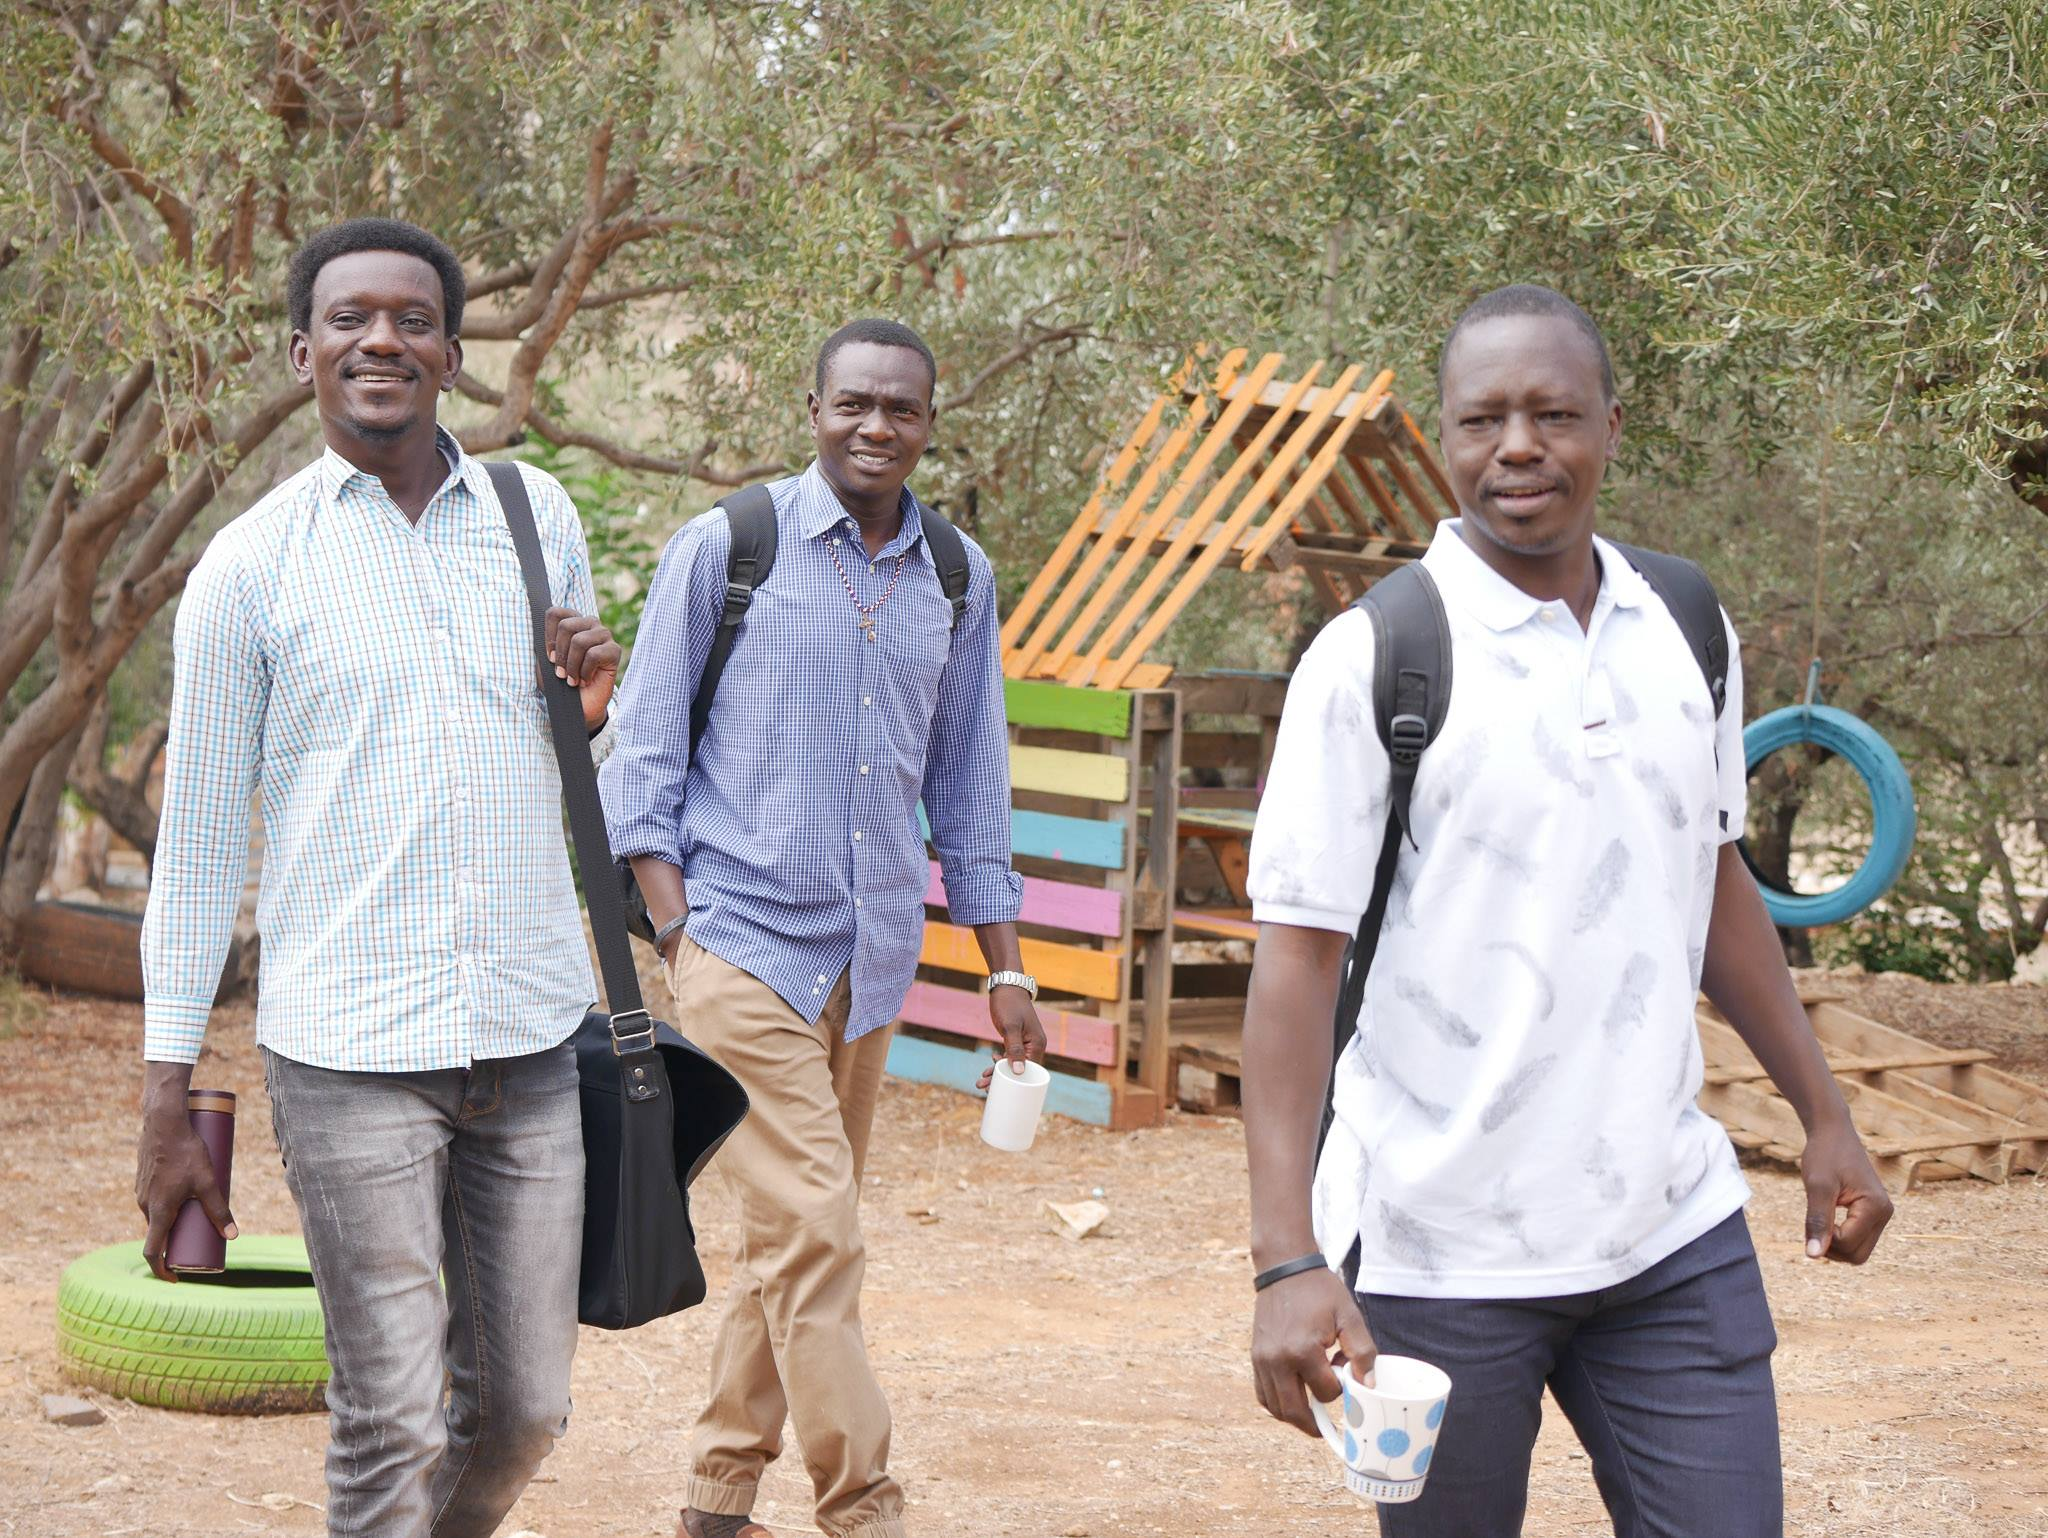 Passing through academic 'fire' to serve communities